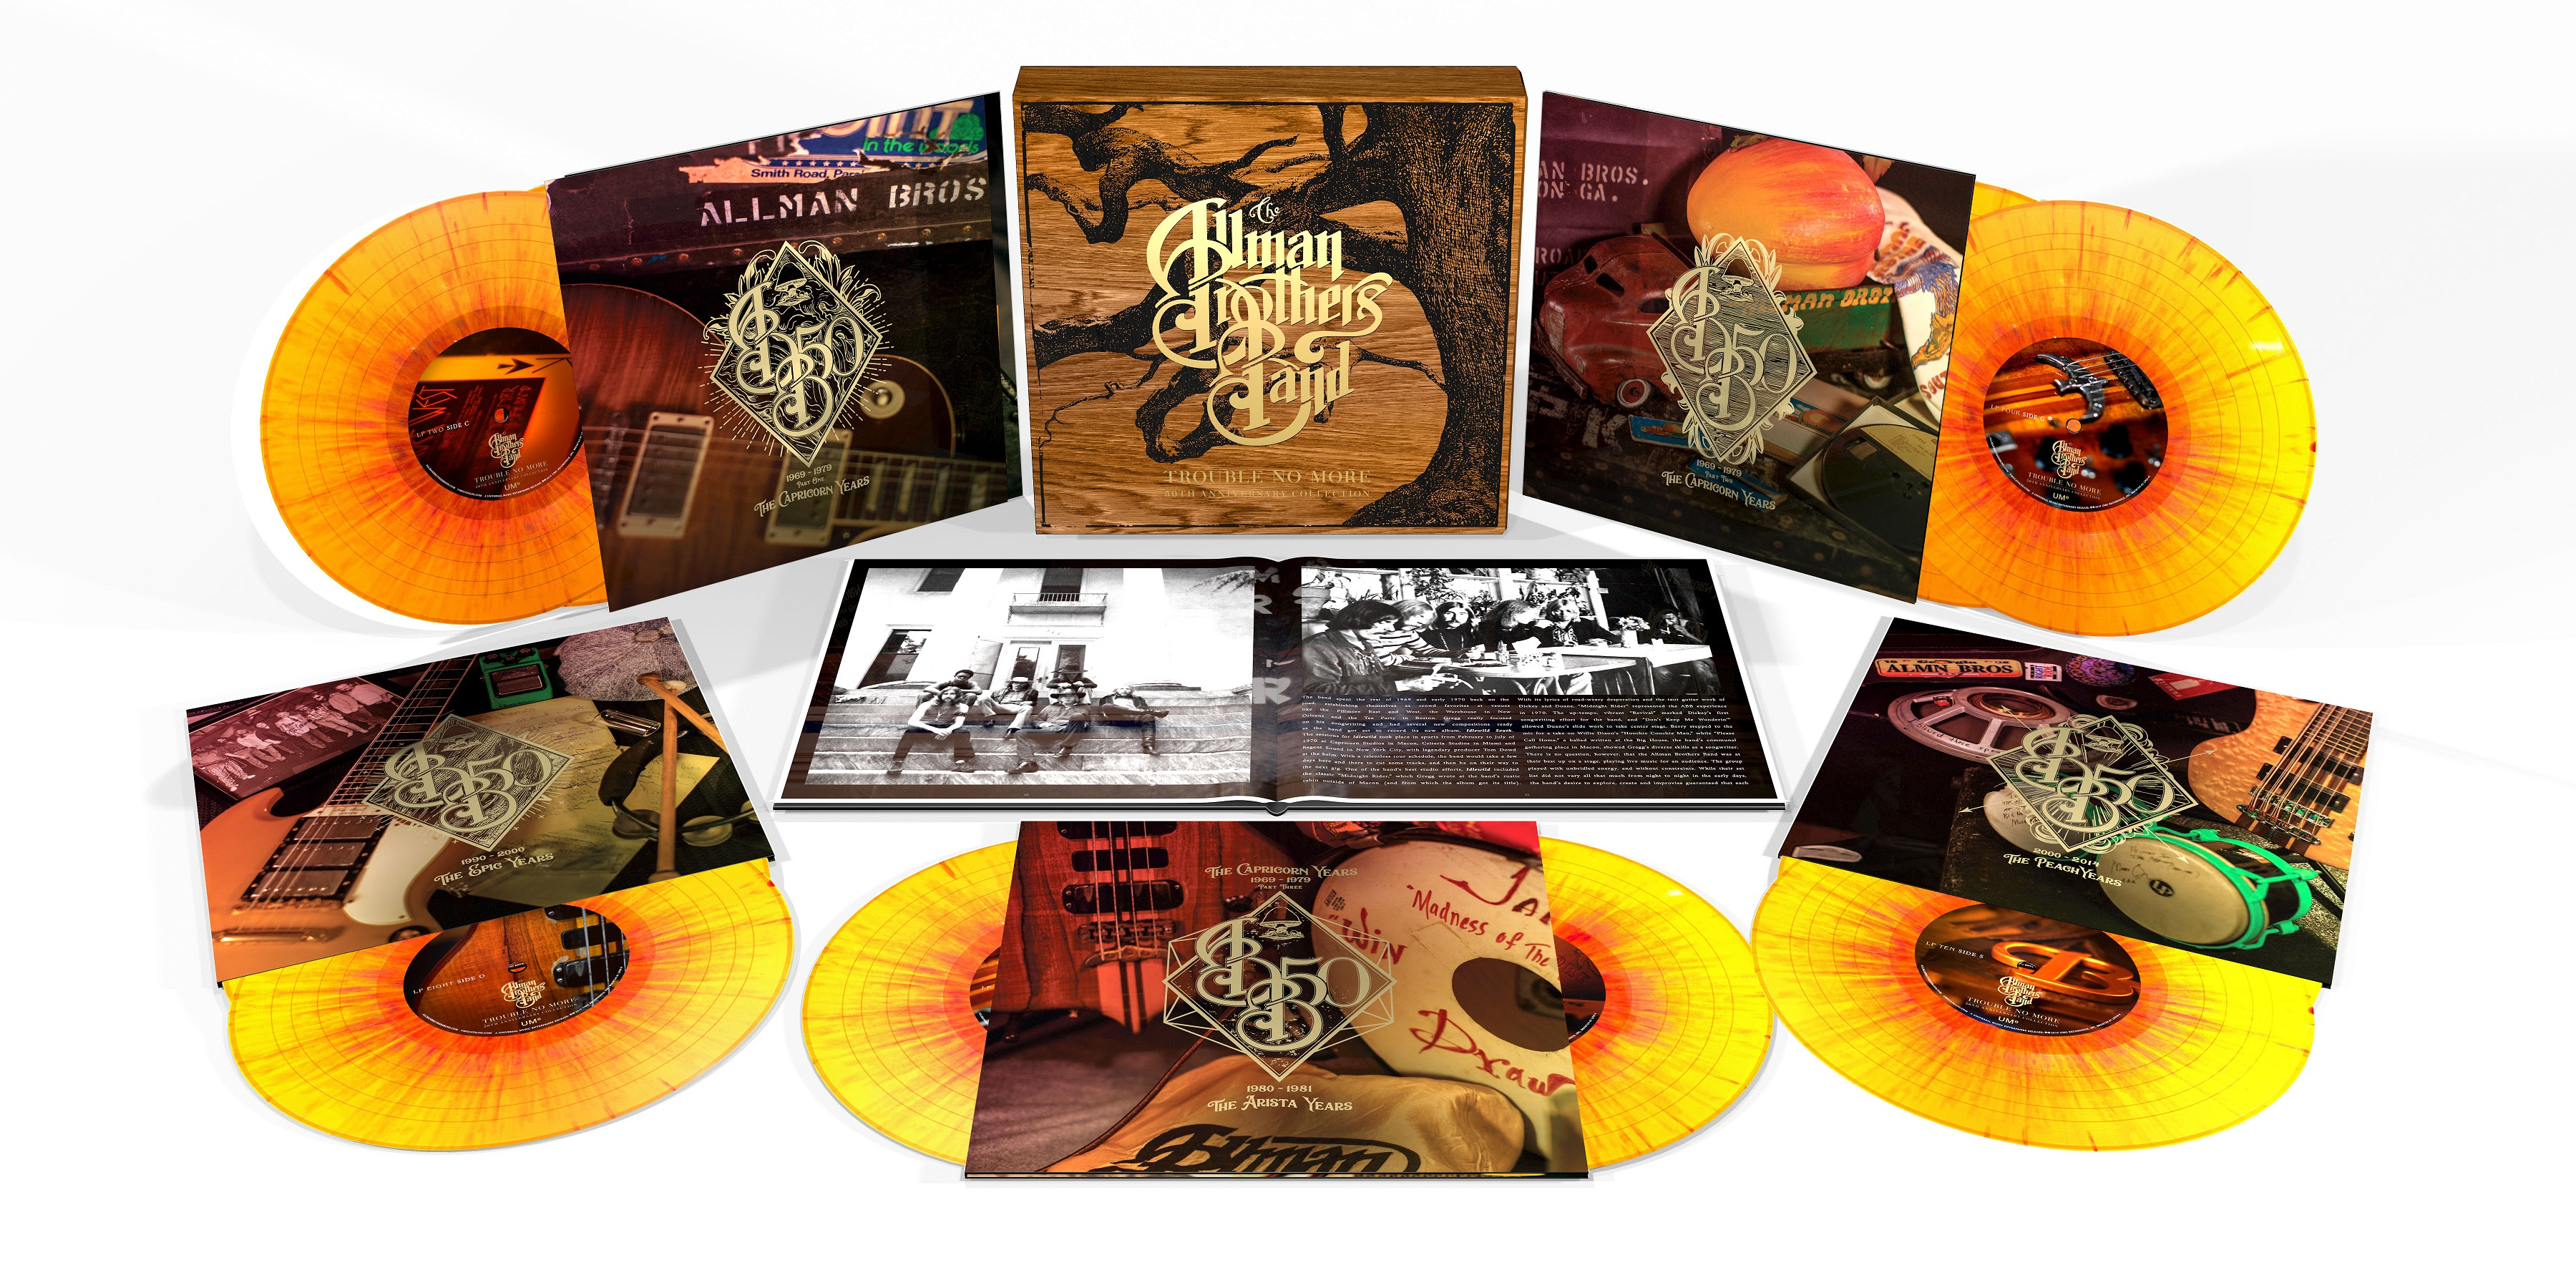 The Allman Brothers Band's 50th Anniversary Celebrated With Massive Career-Spanning Retrospective